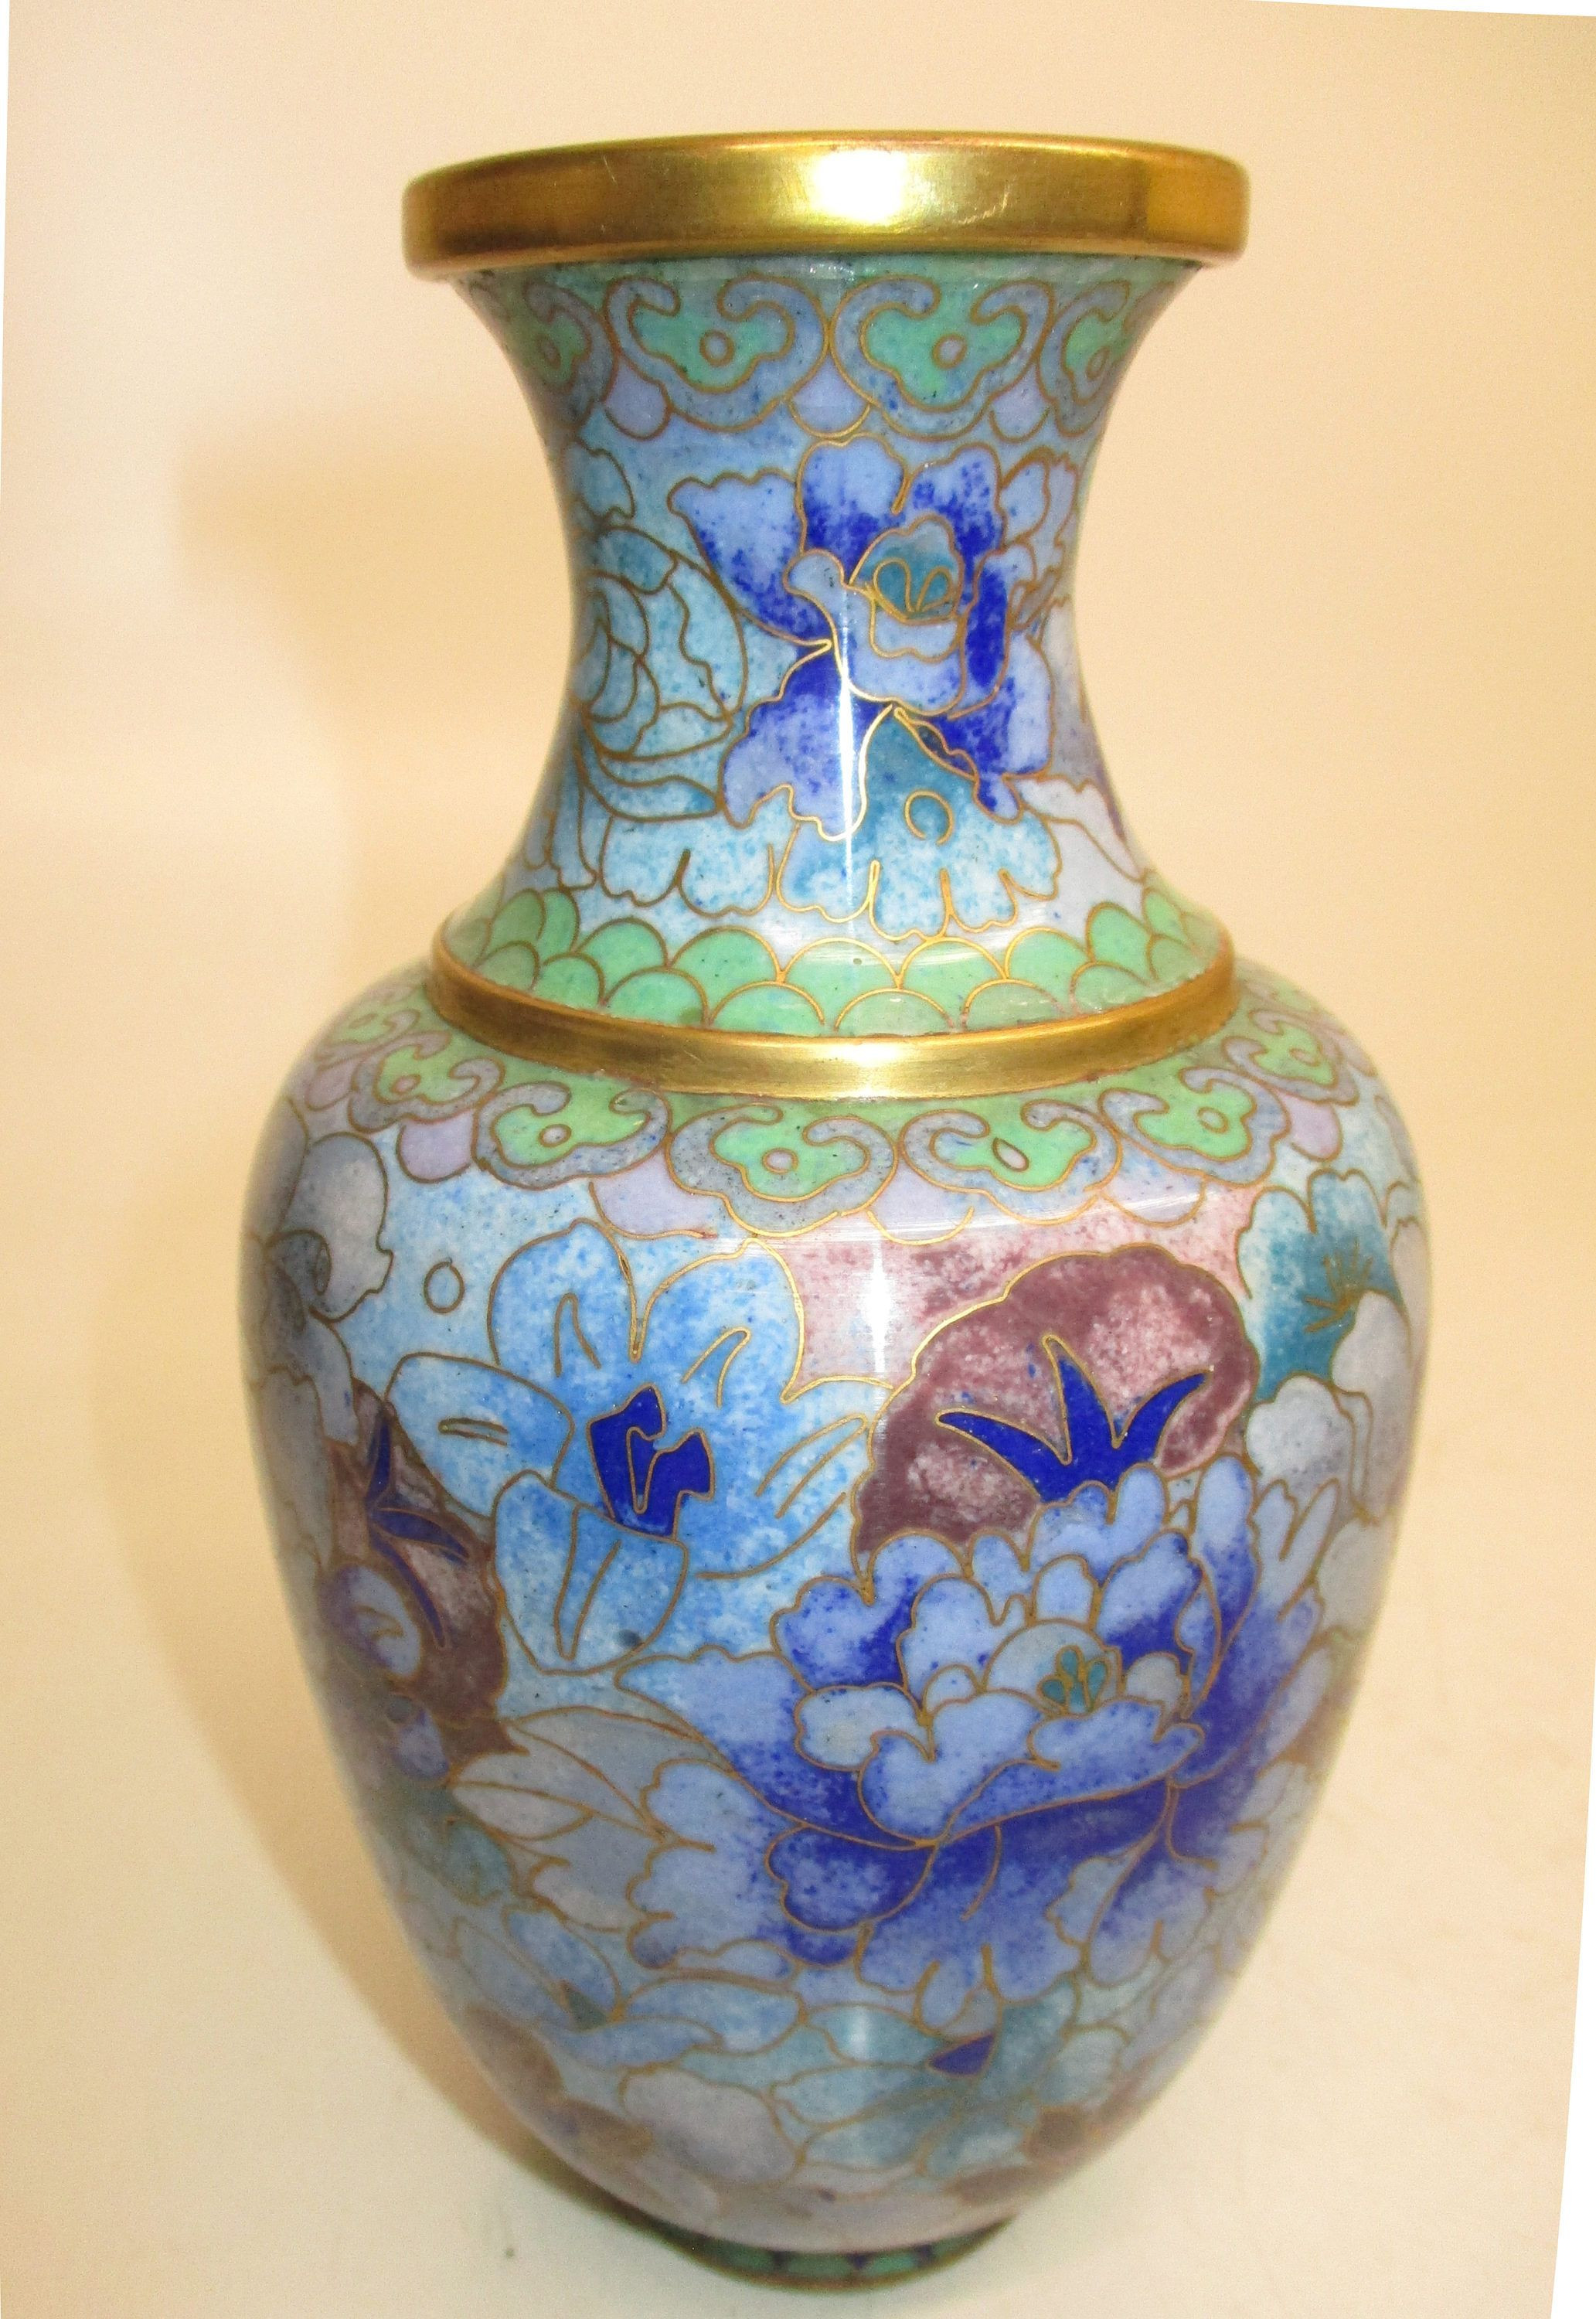 asian vases for sale of vases artificial plants collection page 77 intended for vintage vases for sale gallery excited to share the latest addition to my etsy shop 6 5quot vintage of vintage vases for sale